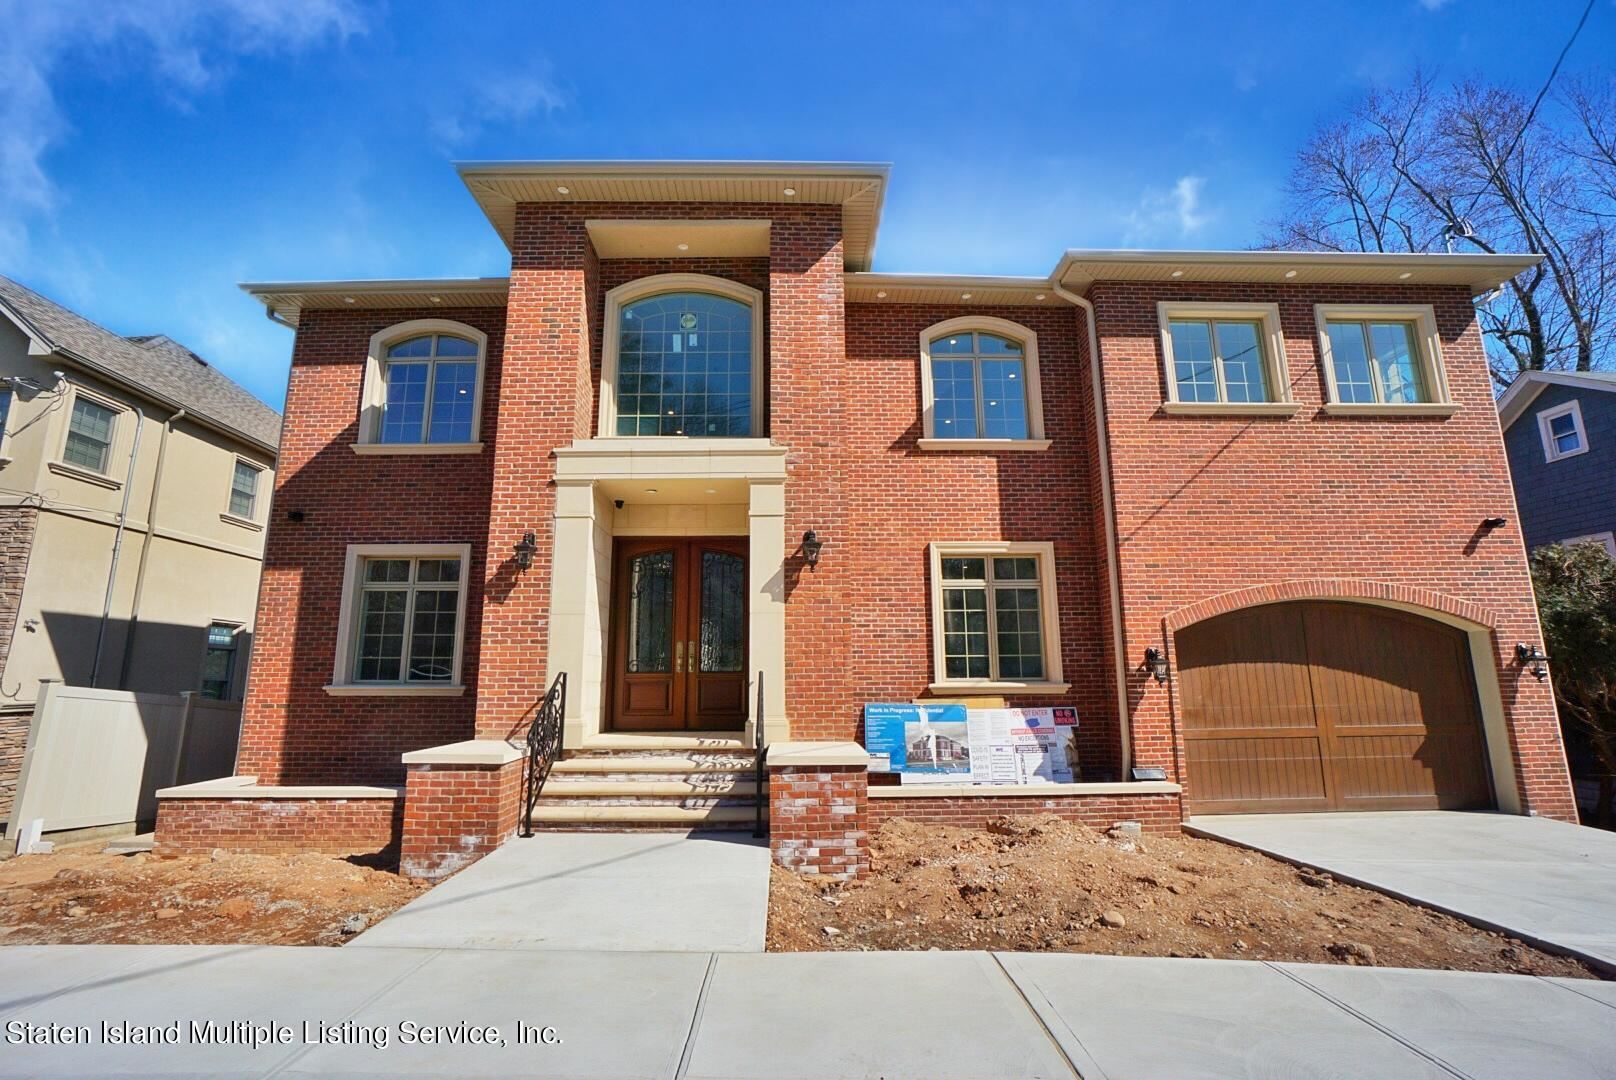 Photo for 55 Goff Avenue, Staten Island, NY 10309 (MLS # 1142559)